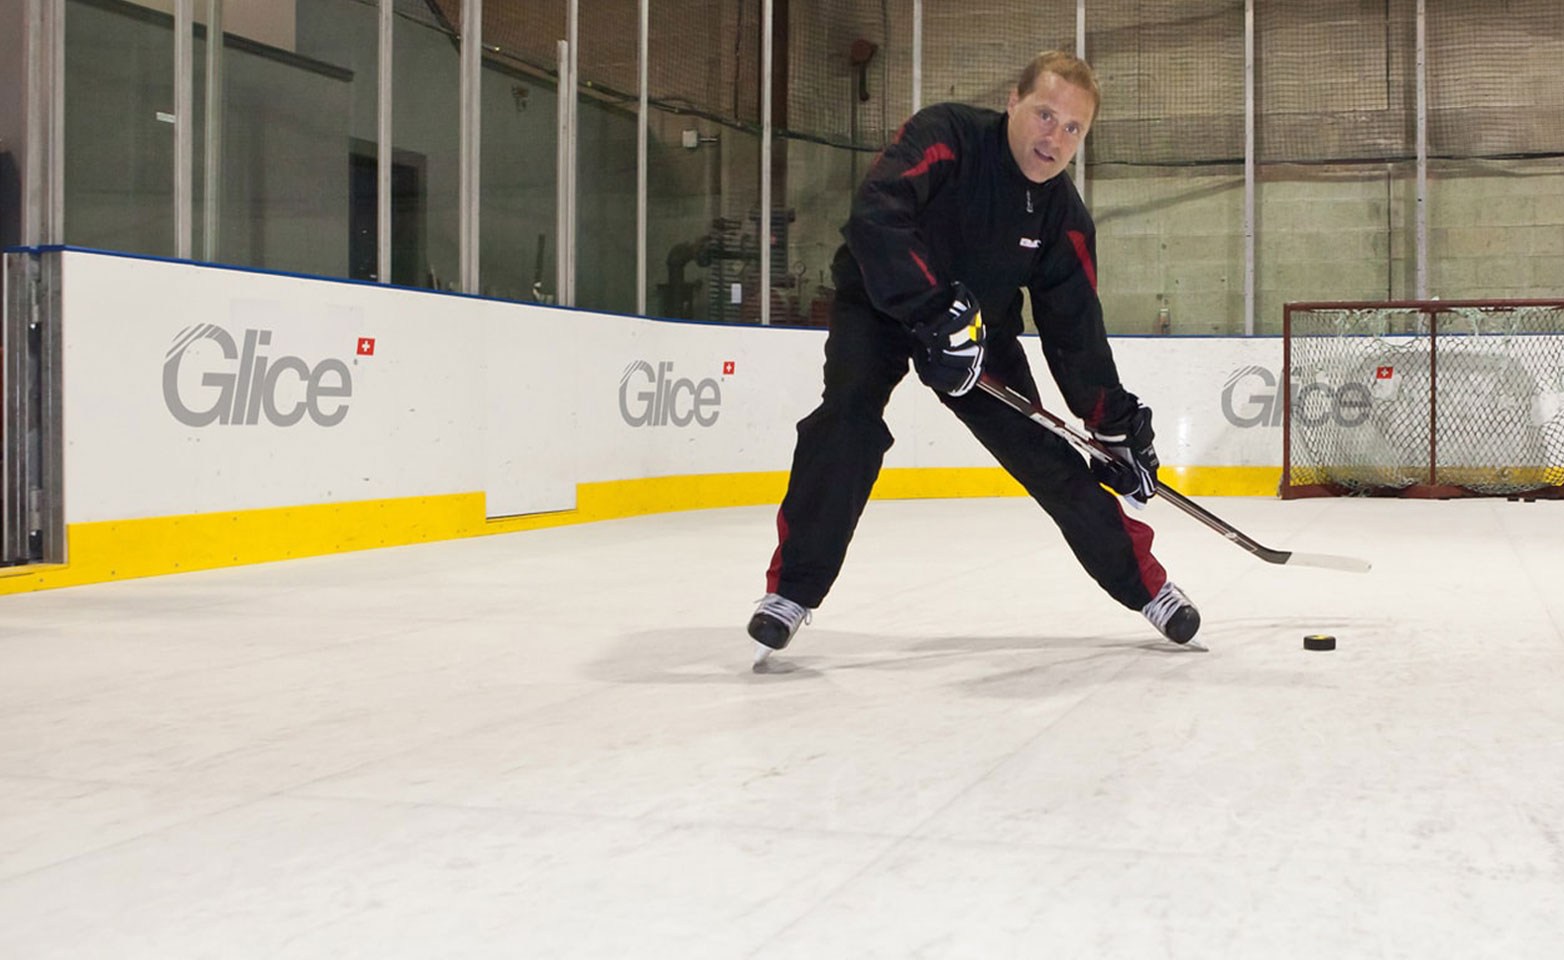 NHL veteran Cliff Ronning practicing on artificial ice rink